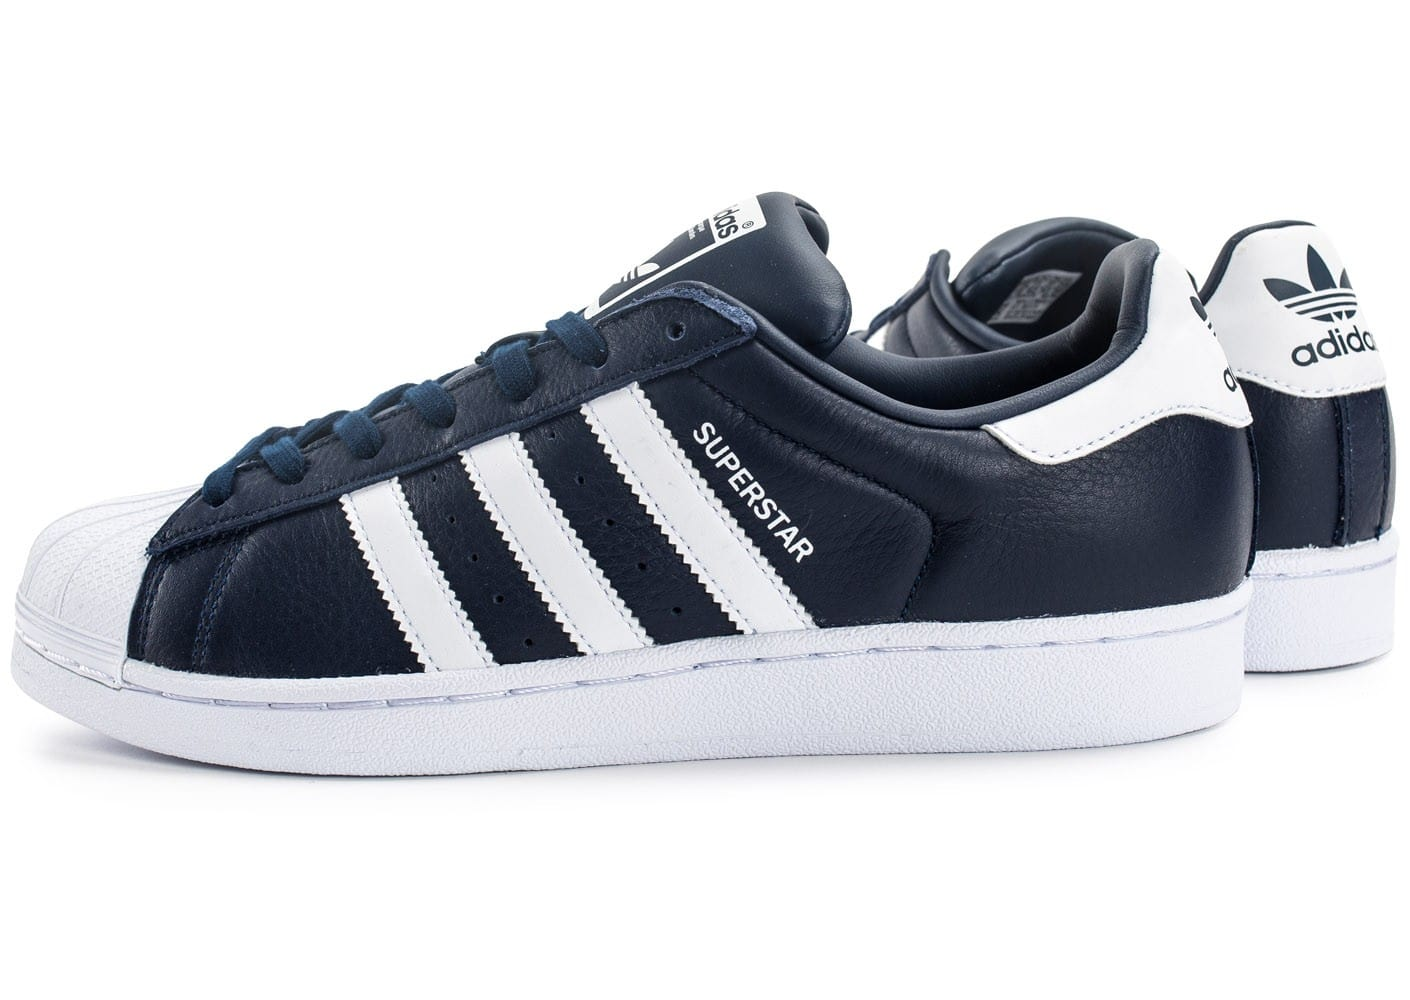 chaussures adidas fille superstar. Black Bedroom Furniture Sets. Home Design Ideas